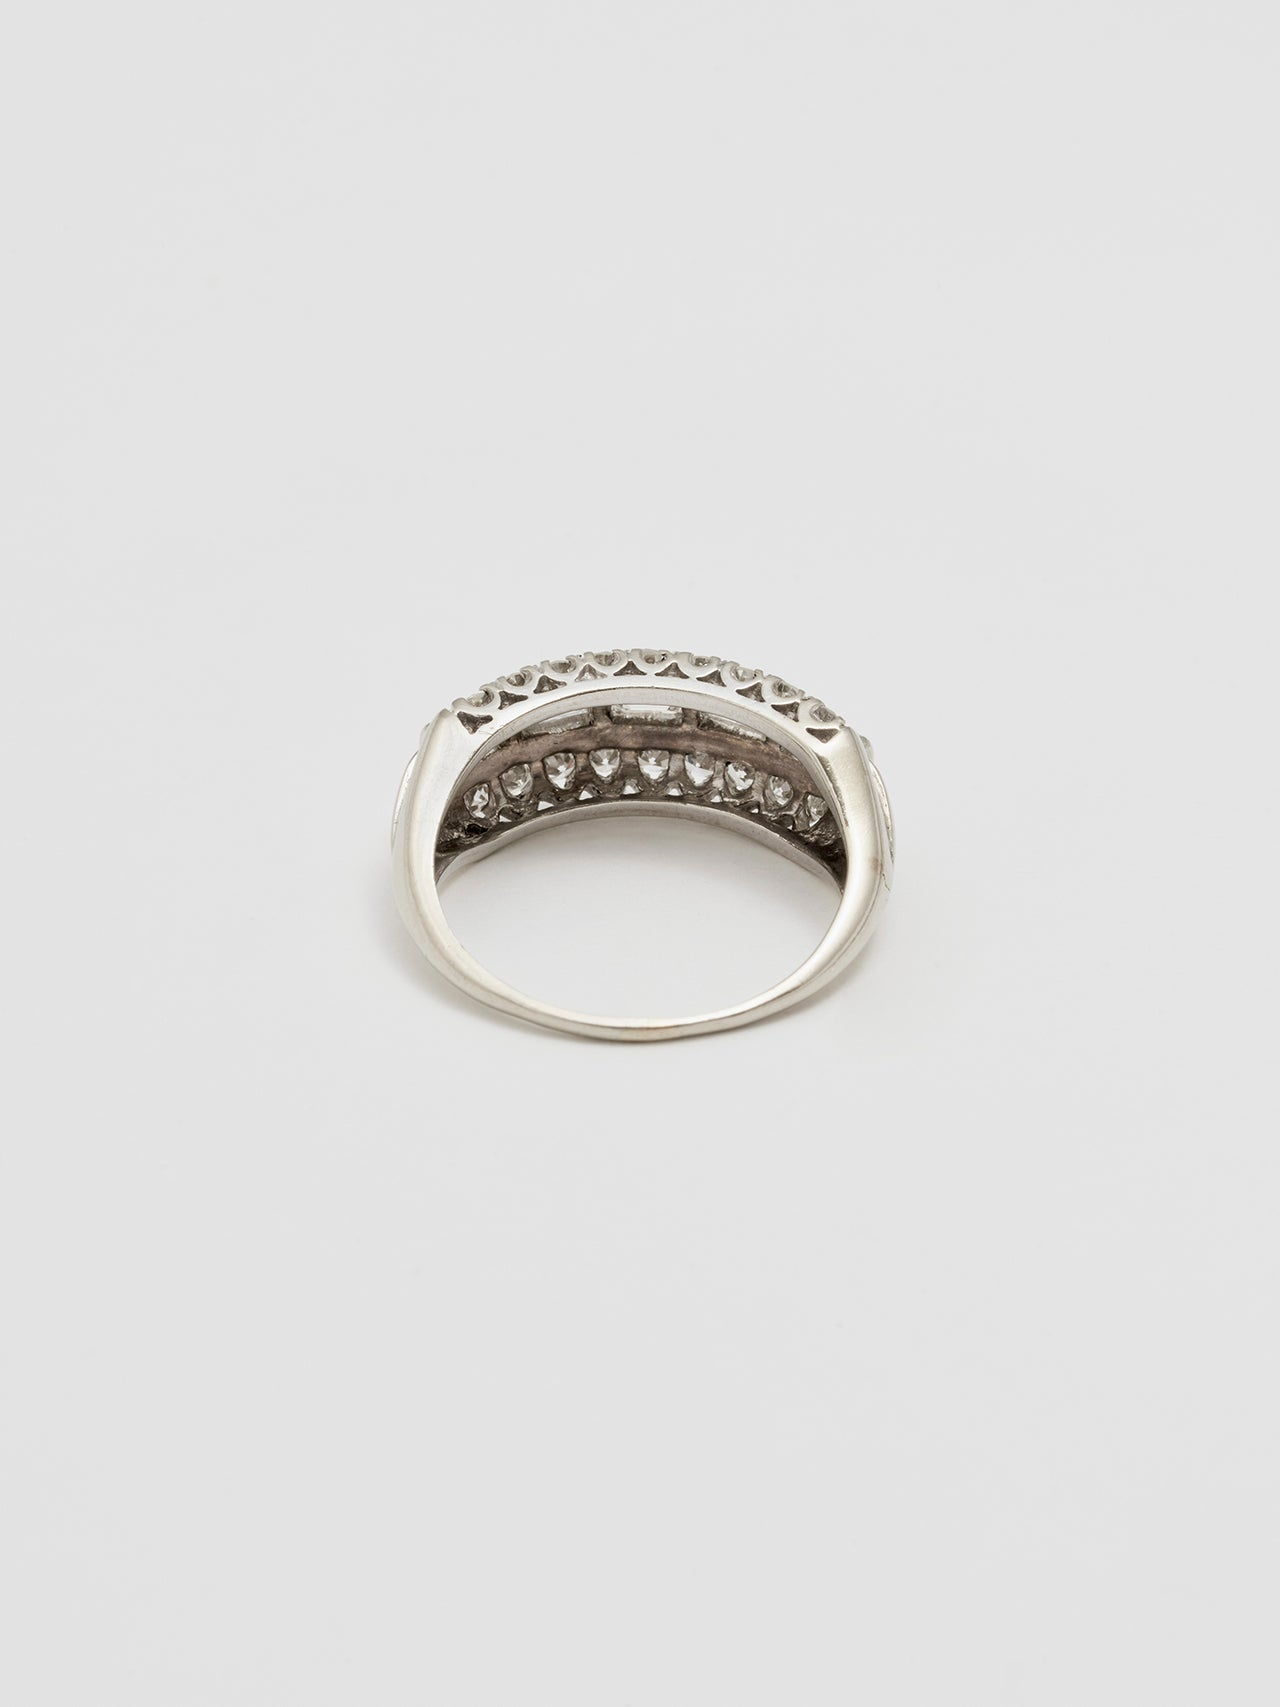 Vintage Baguette Diamond Ring